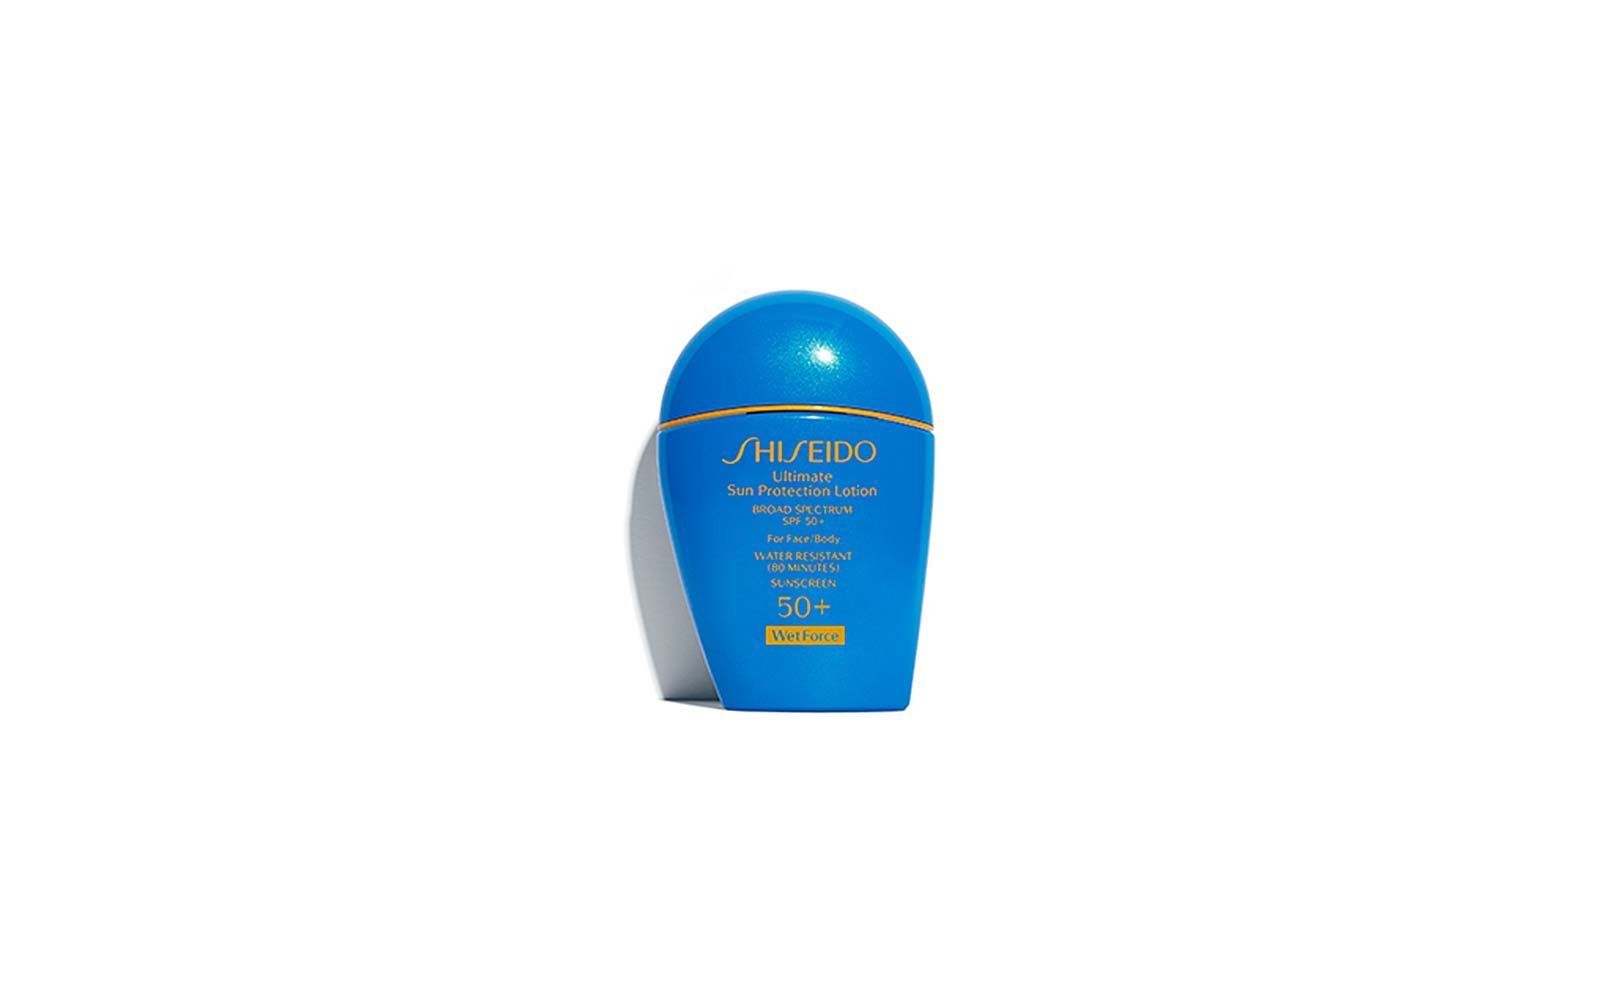 Shiseido Ultimate Sun Protection Lotion Wetforce Broad Spectrum